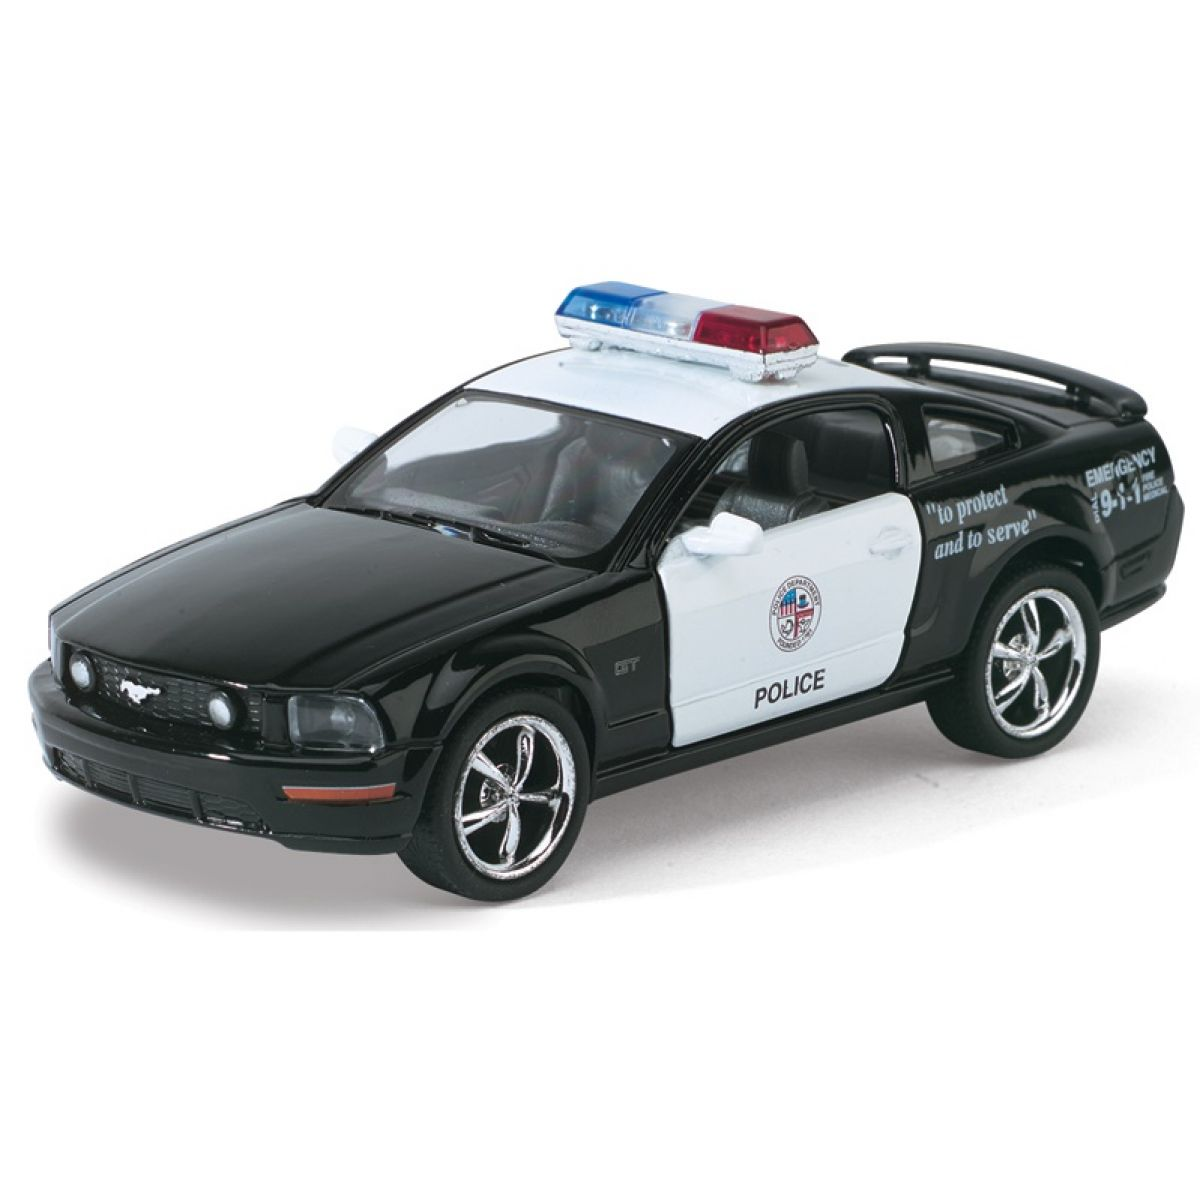 HM Studio Ford Mustang GT Policie